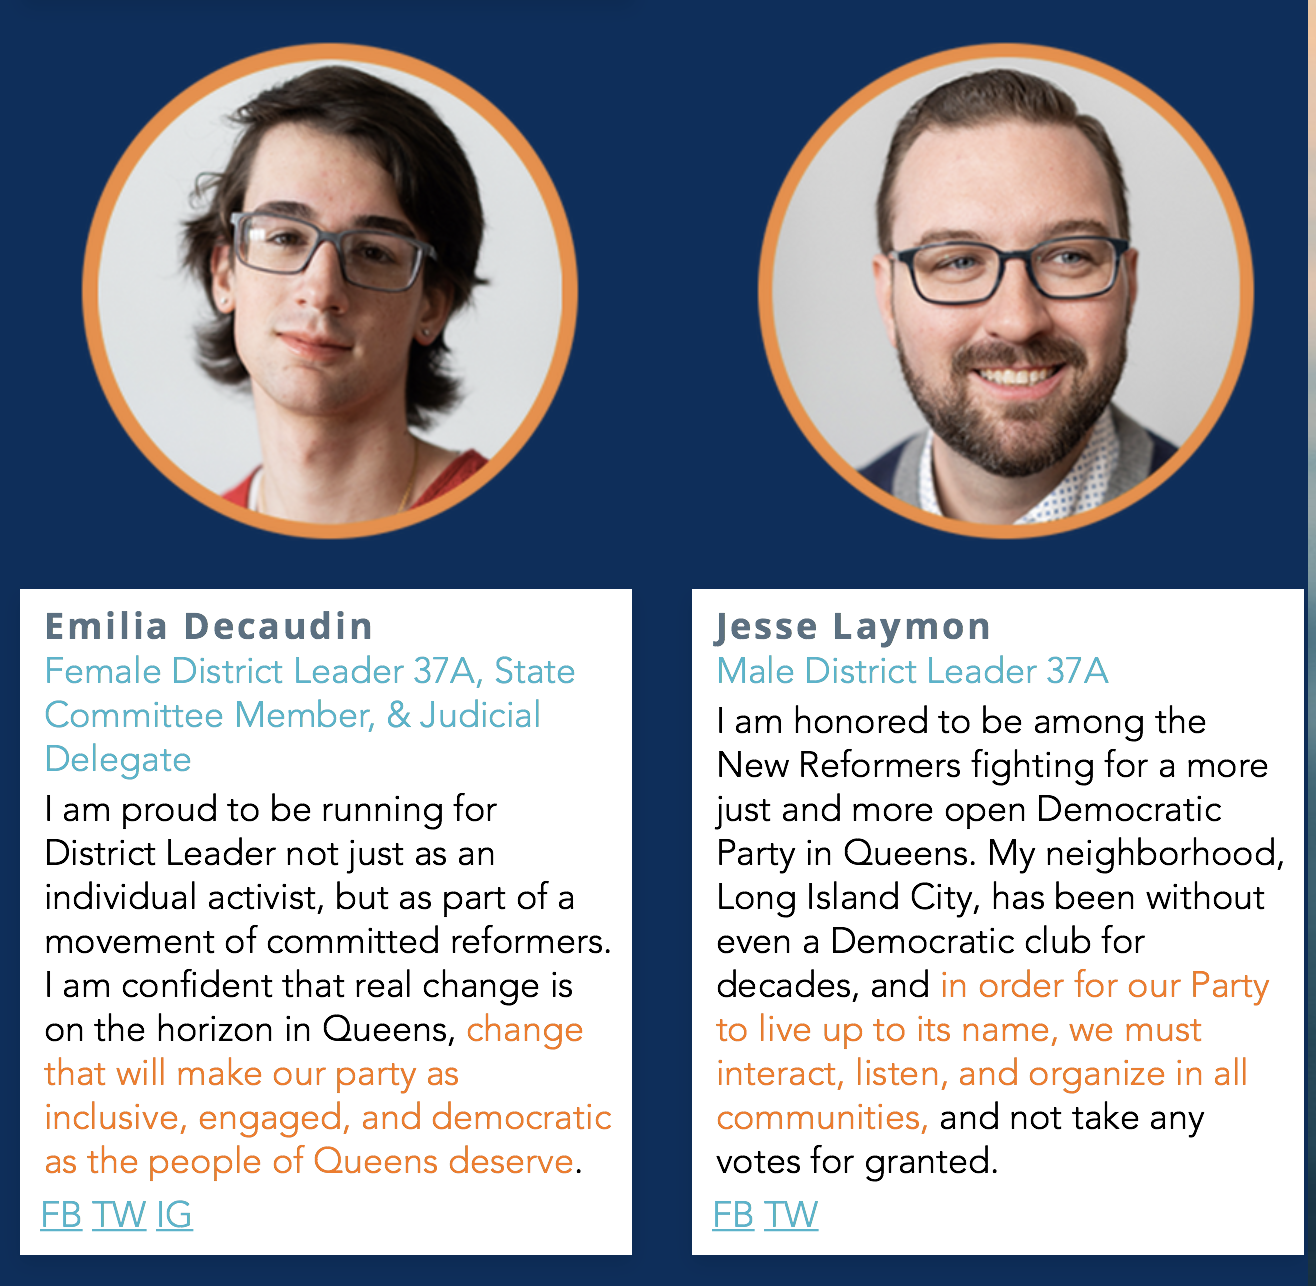 Emilia Decaudin and Jesse Laymon run for Female District Leaderand Male District Leader in Queens County